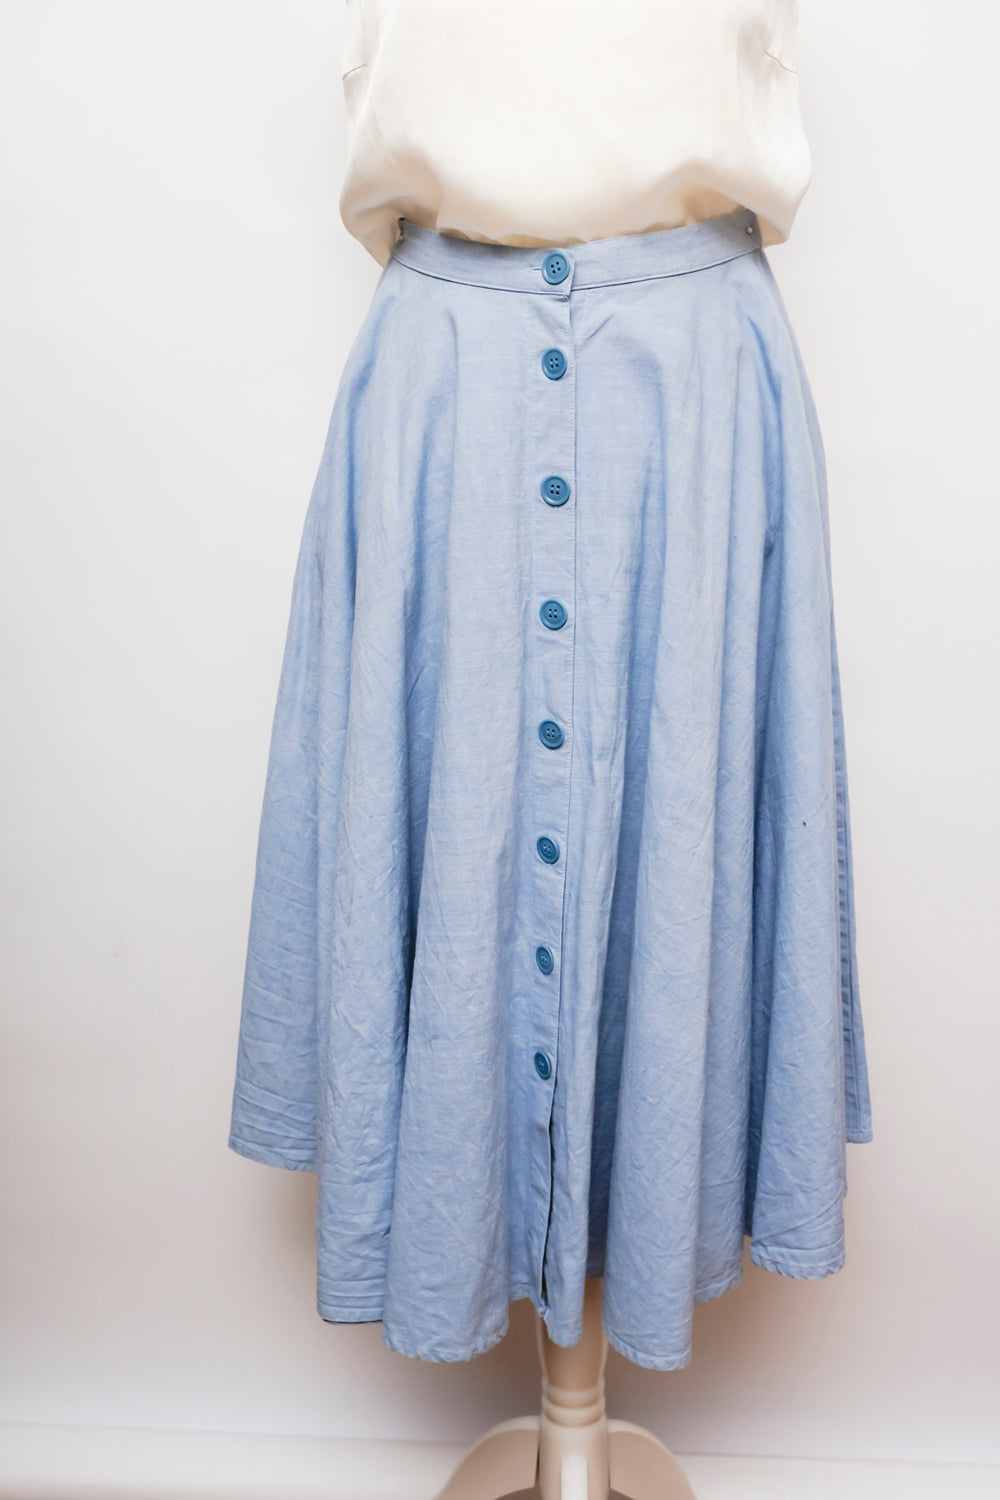 0001_BLUE HIGH WAIST SKIRT